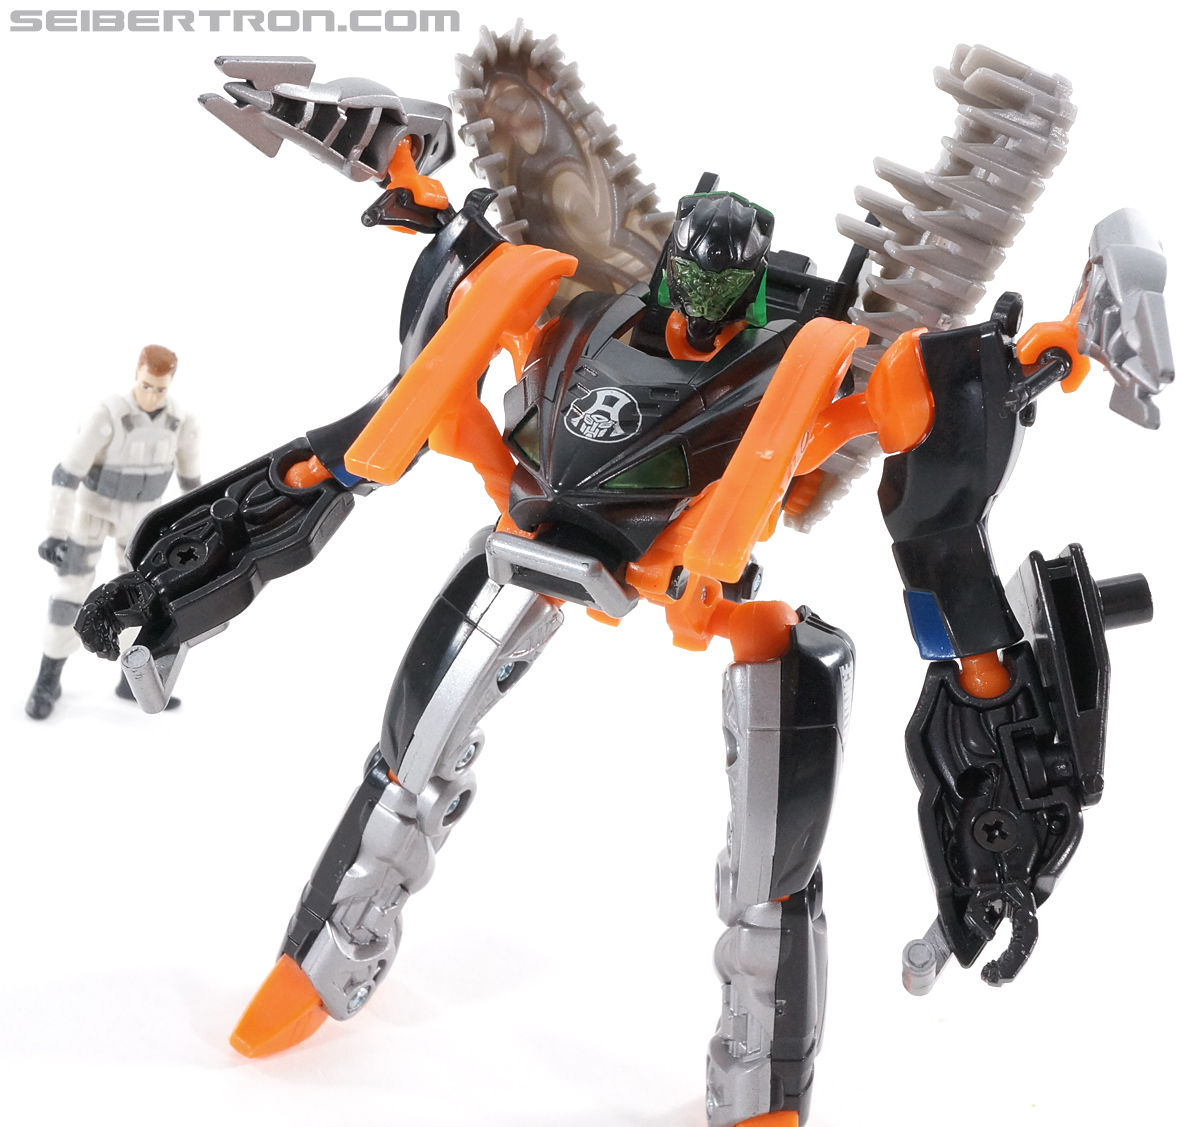 Transformers Dark of the Moon Icepick (Flash Freeze Assault) (Image #122 of 123)